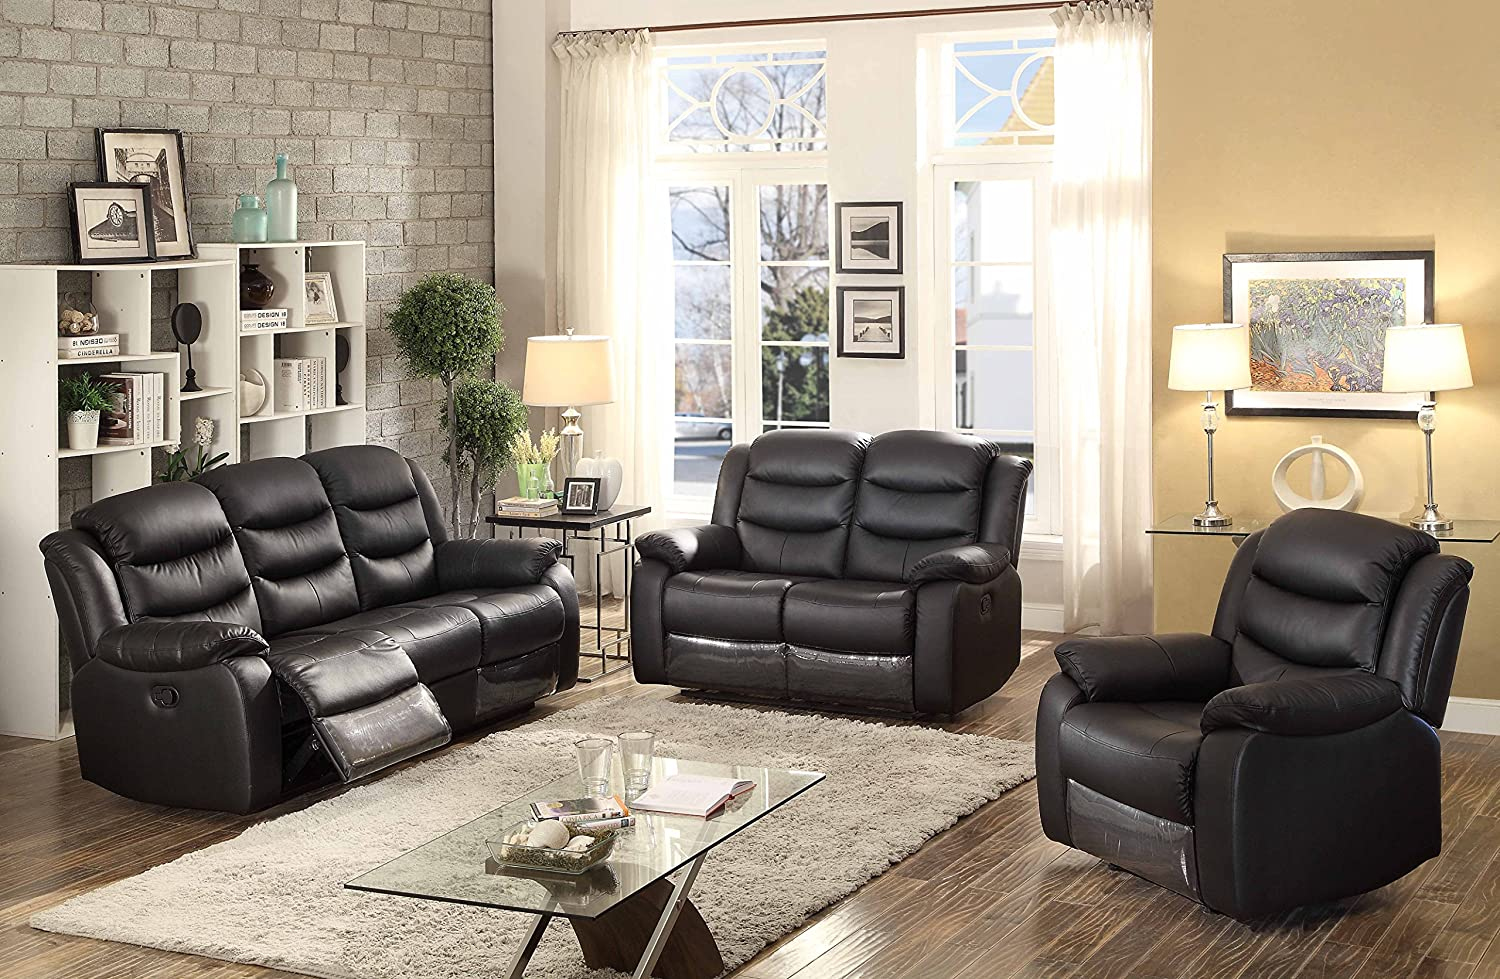 Amazon com ac pacific 3 piece transitional living room reclining leather sofa set with sofa loveseat and chair black kitchen dining